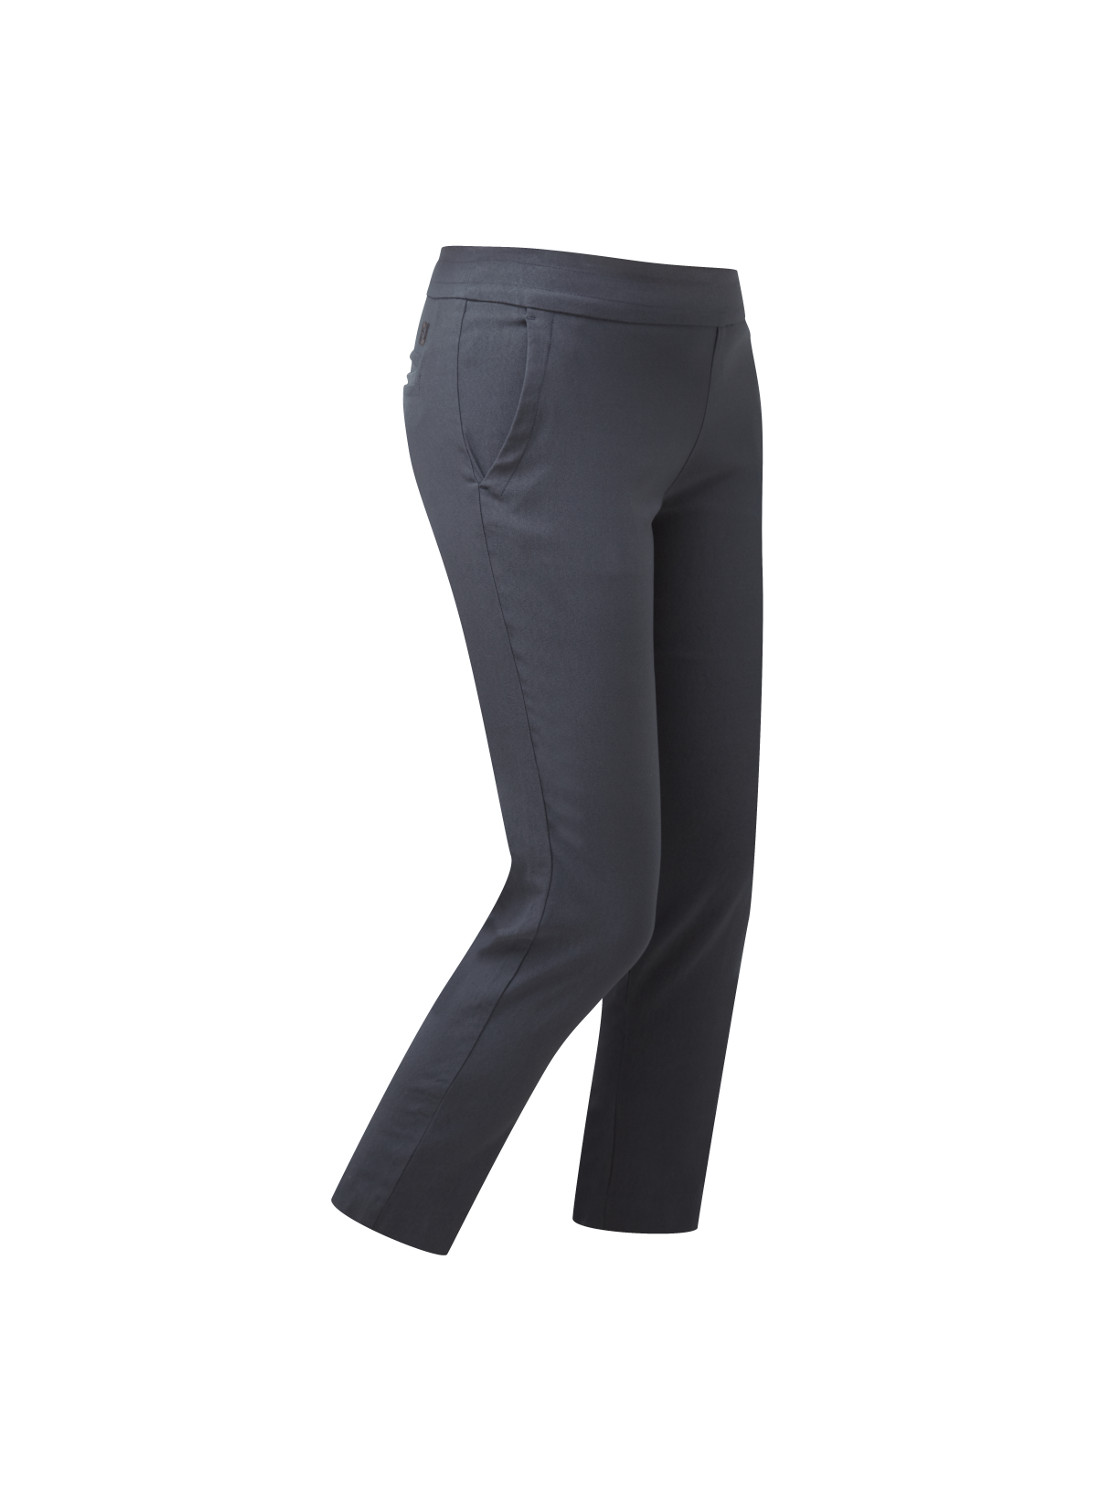 a5db418eab50 Footjoy Performance Damenhose grau